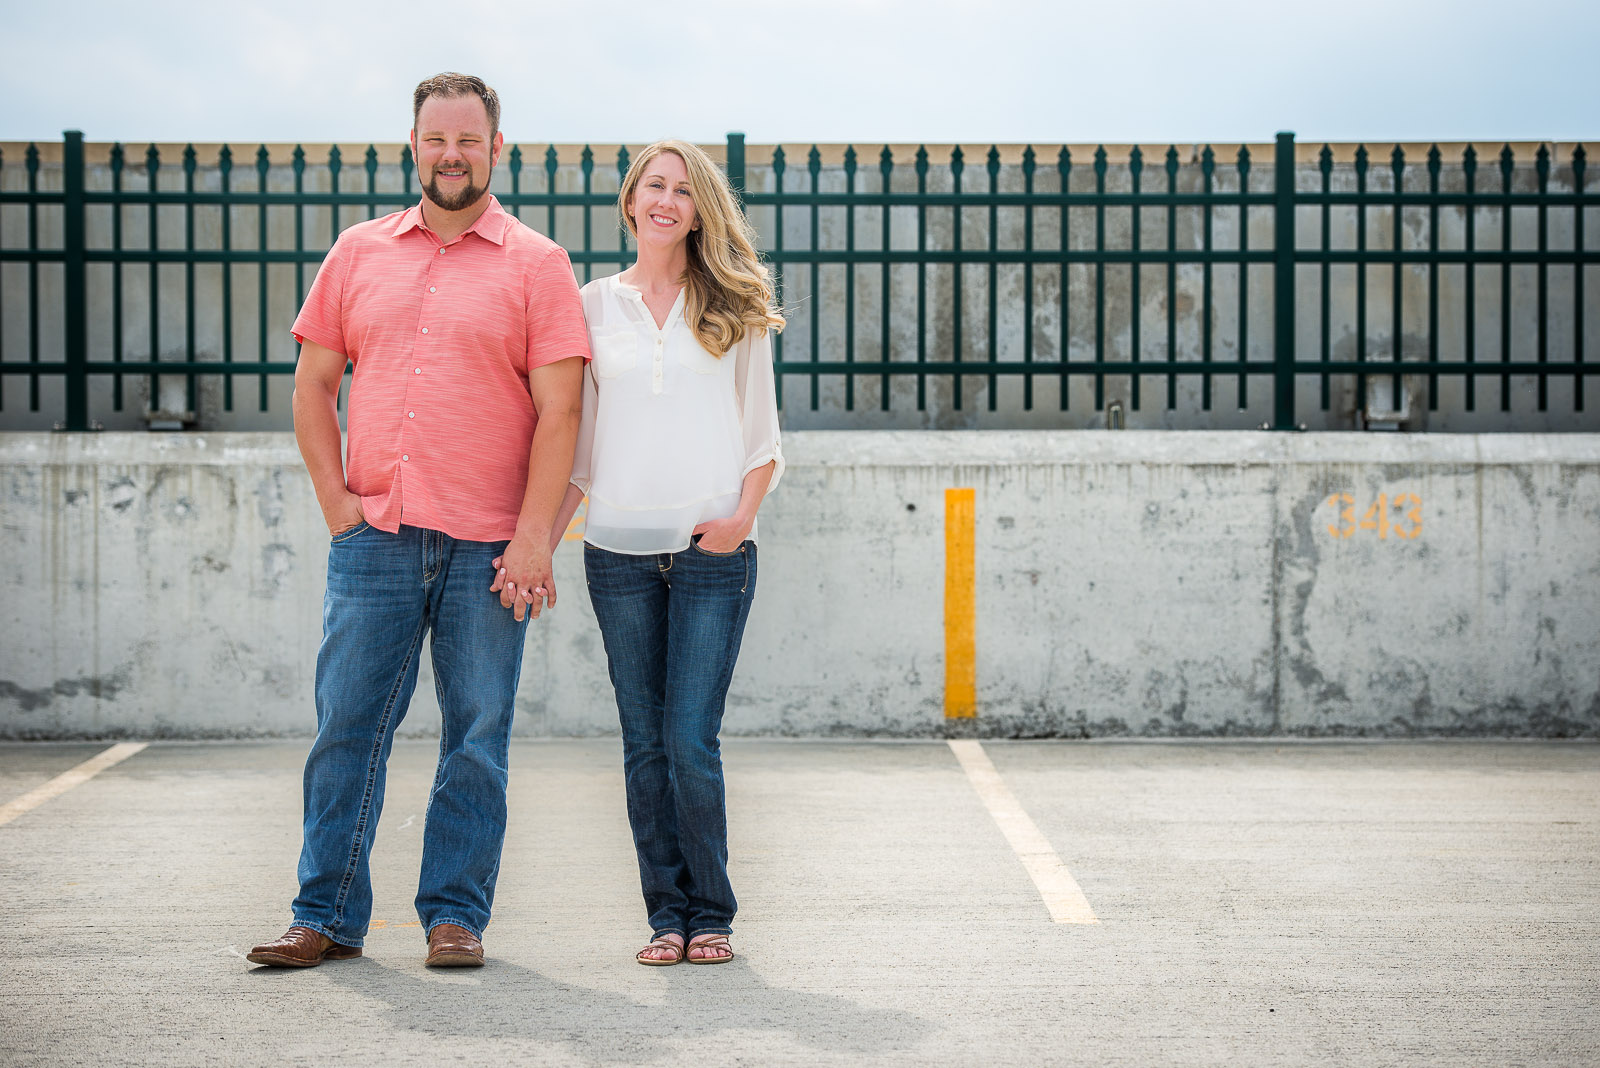 Eric_and_Christy_Photography_Blog_Kelly_Matt_Engagement-18